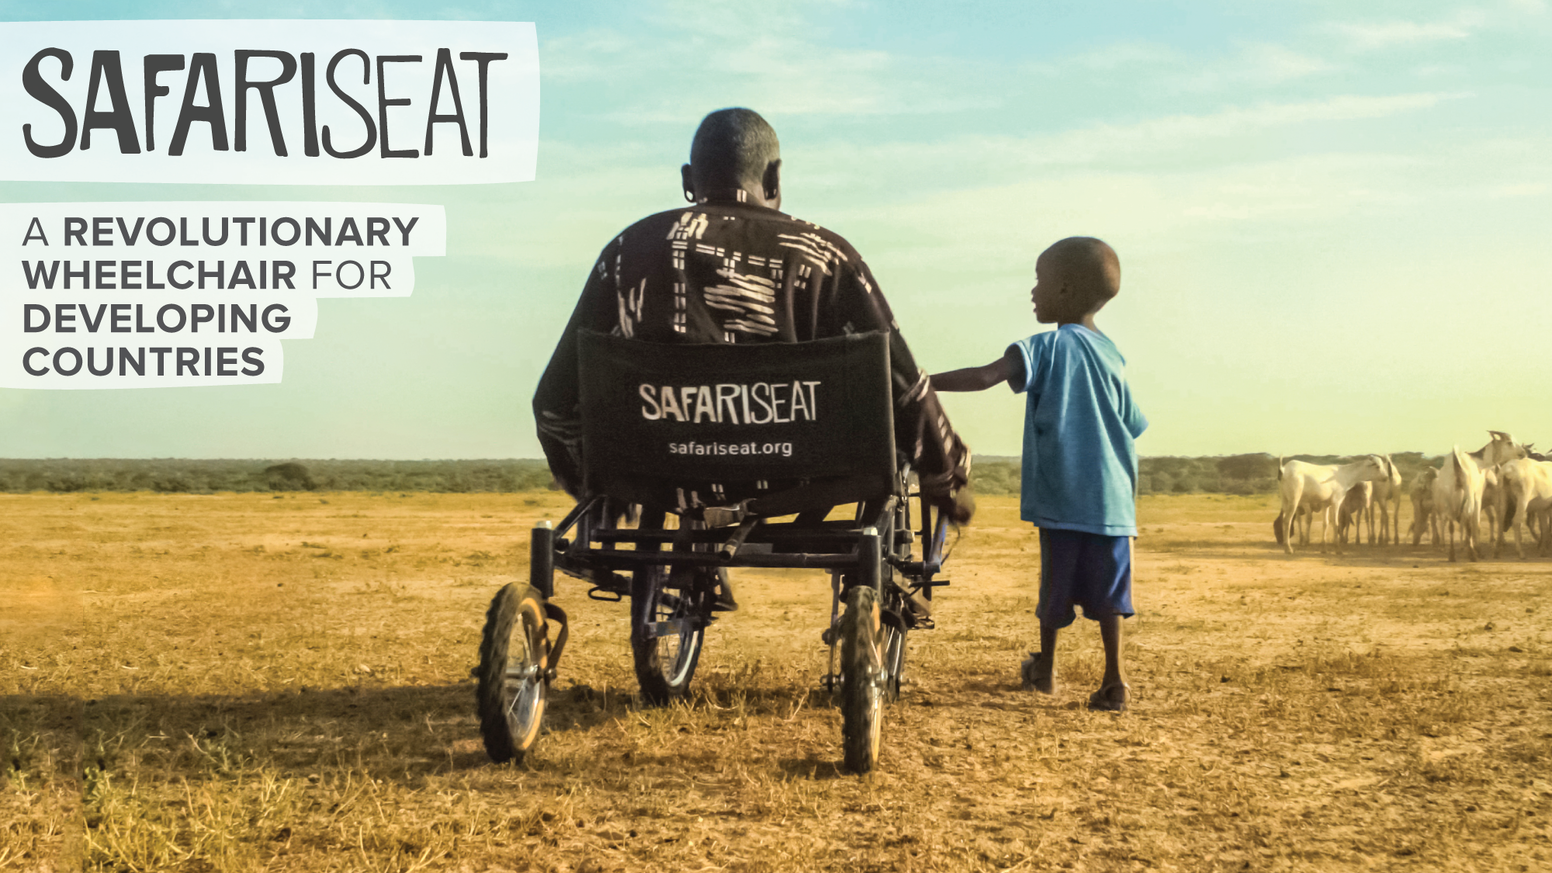 We've designed a low cost, all terrain wheelchair for rural communities. Join us, let's make as many as possible!